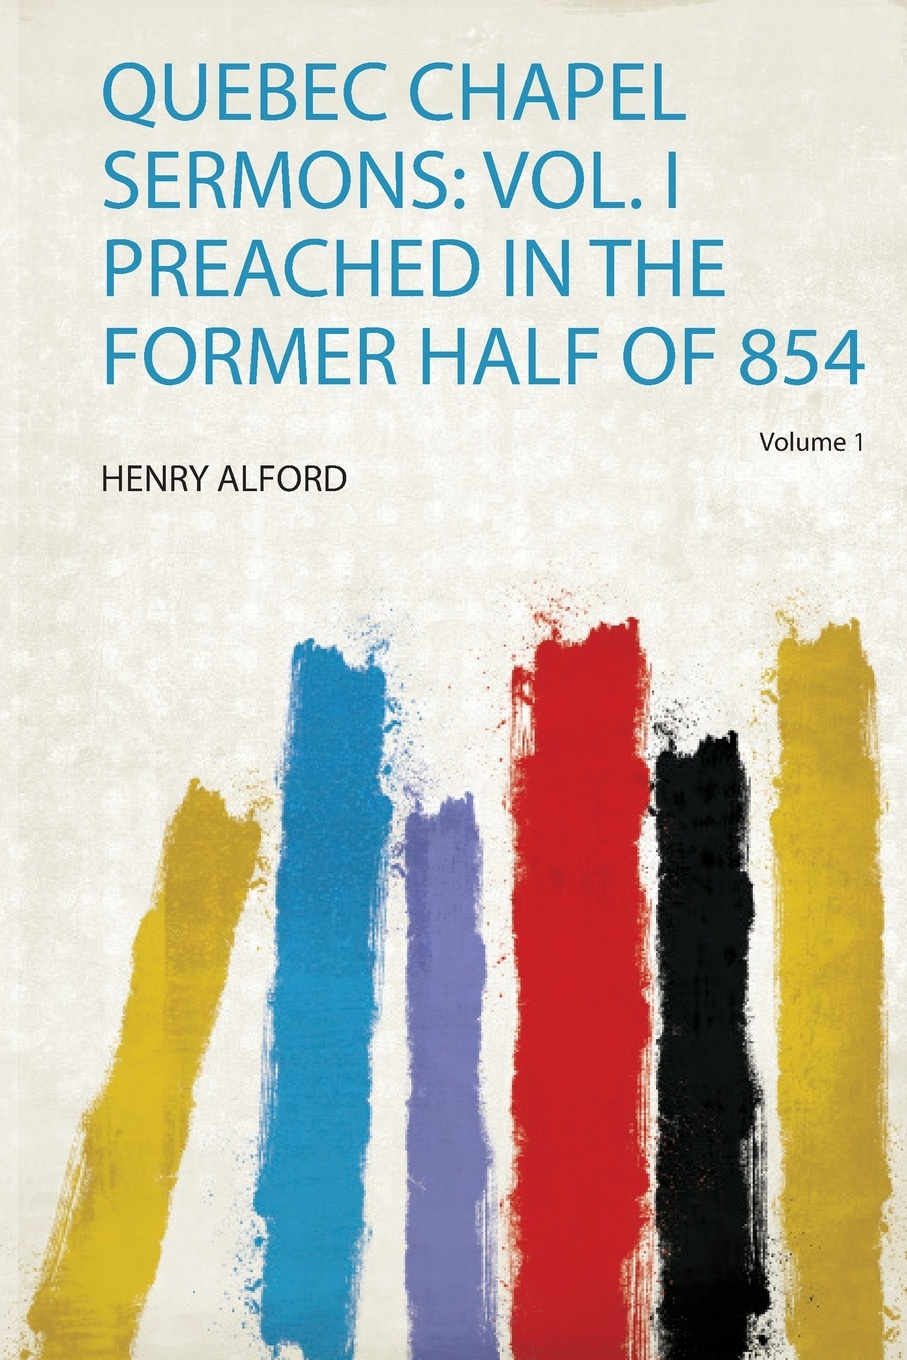 Quebec Chapel Sermons. Vol. I Preached in the Former Half of 854